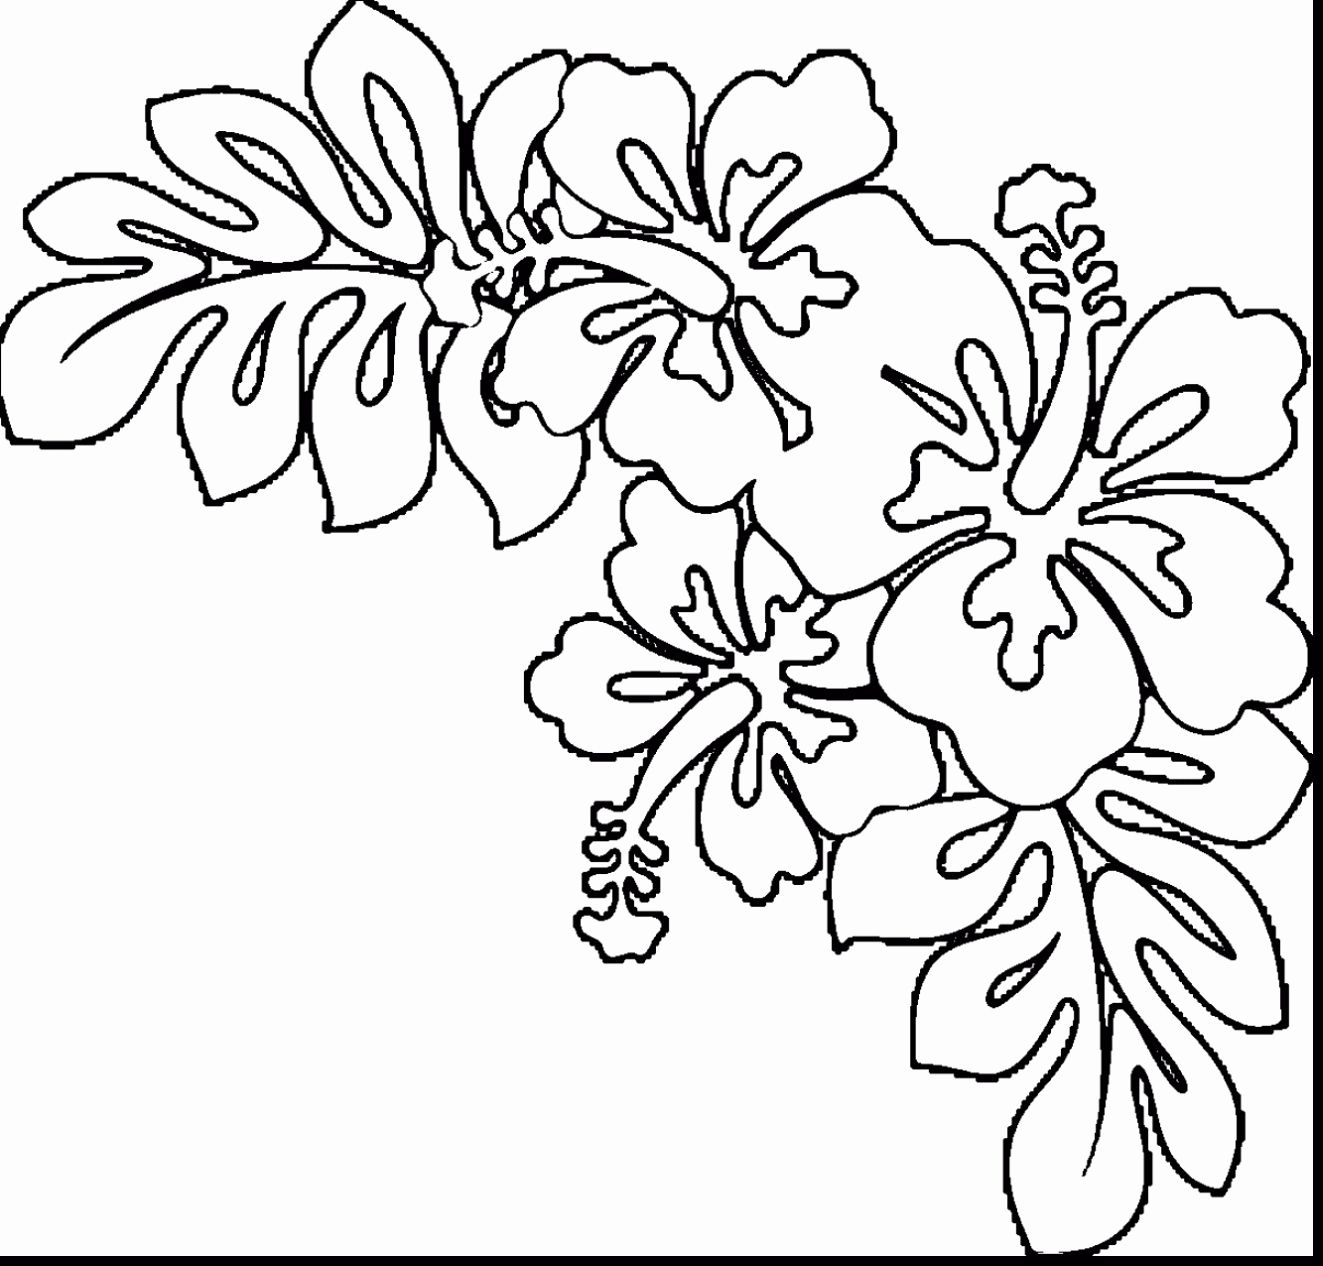 Free Coloring Pages Of Hawaiian Flowers - Coloring Home | 1266x1323